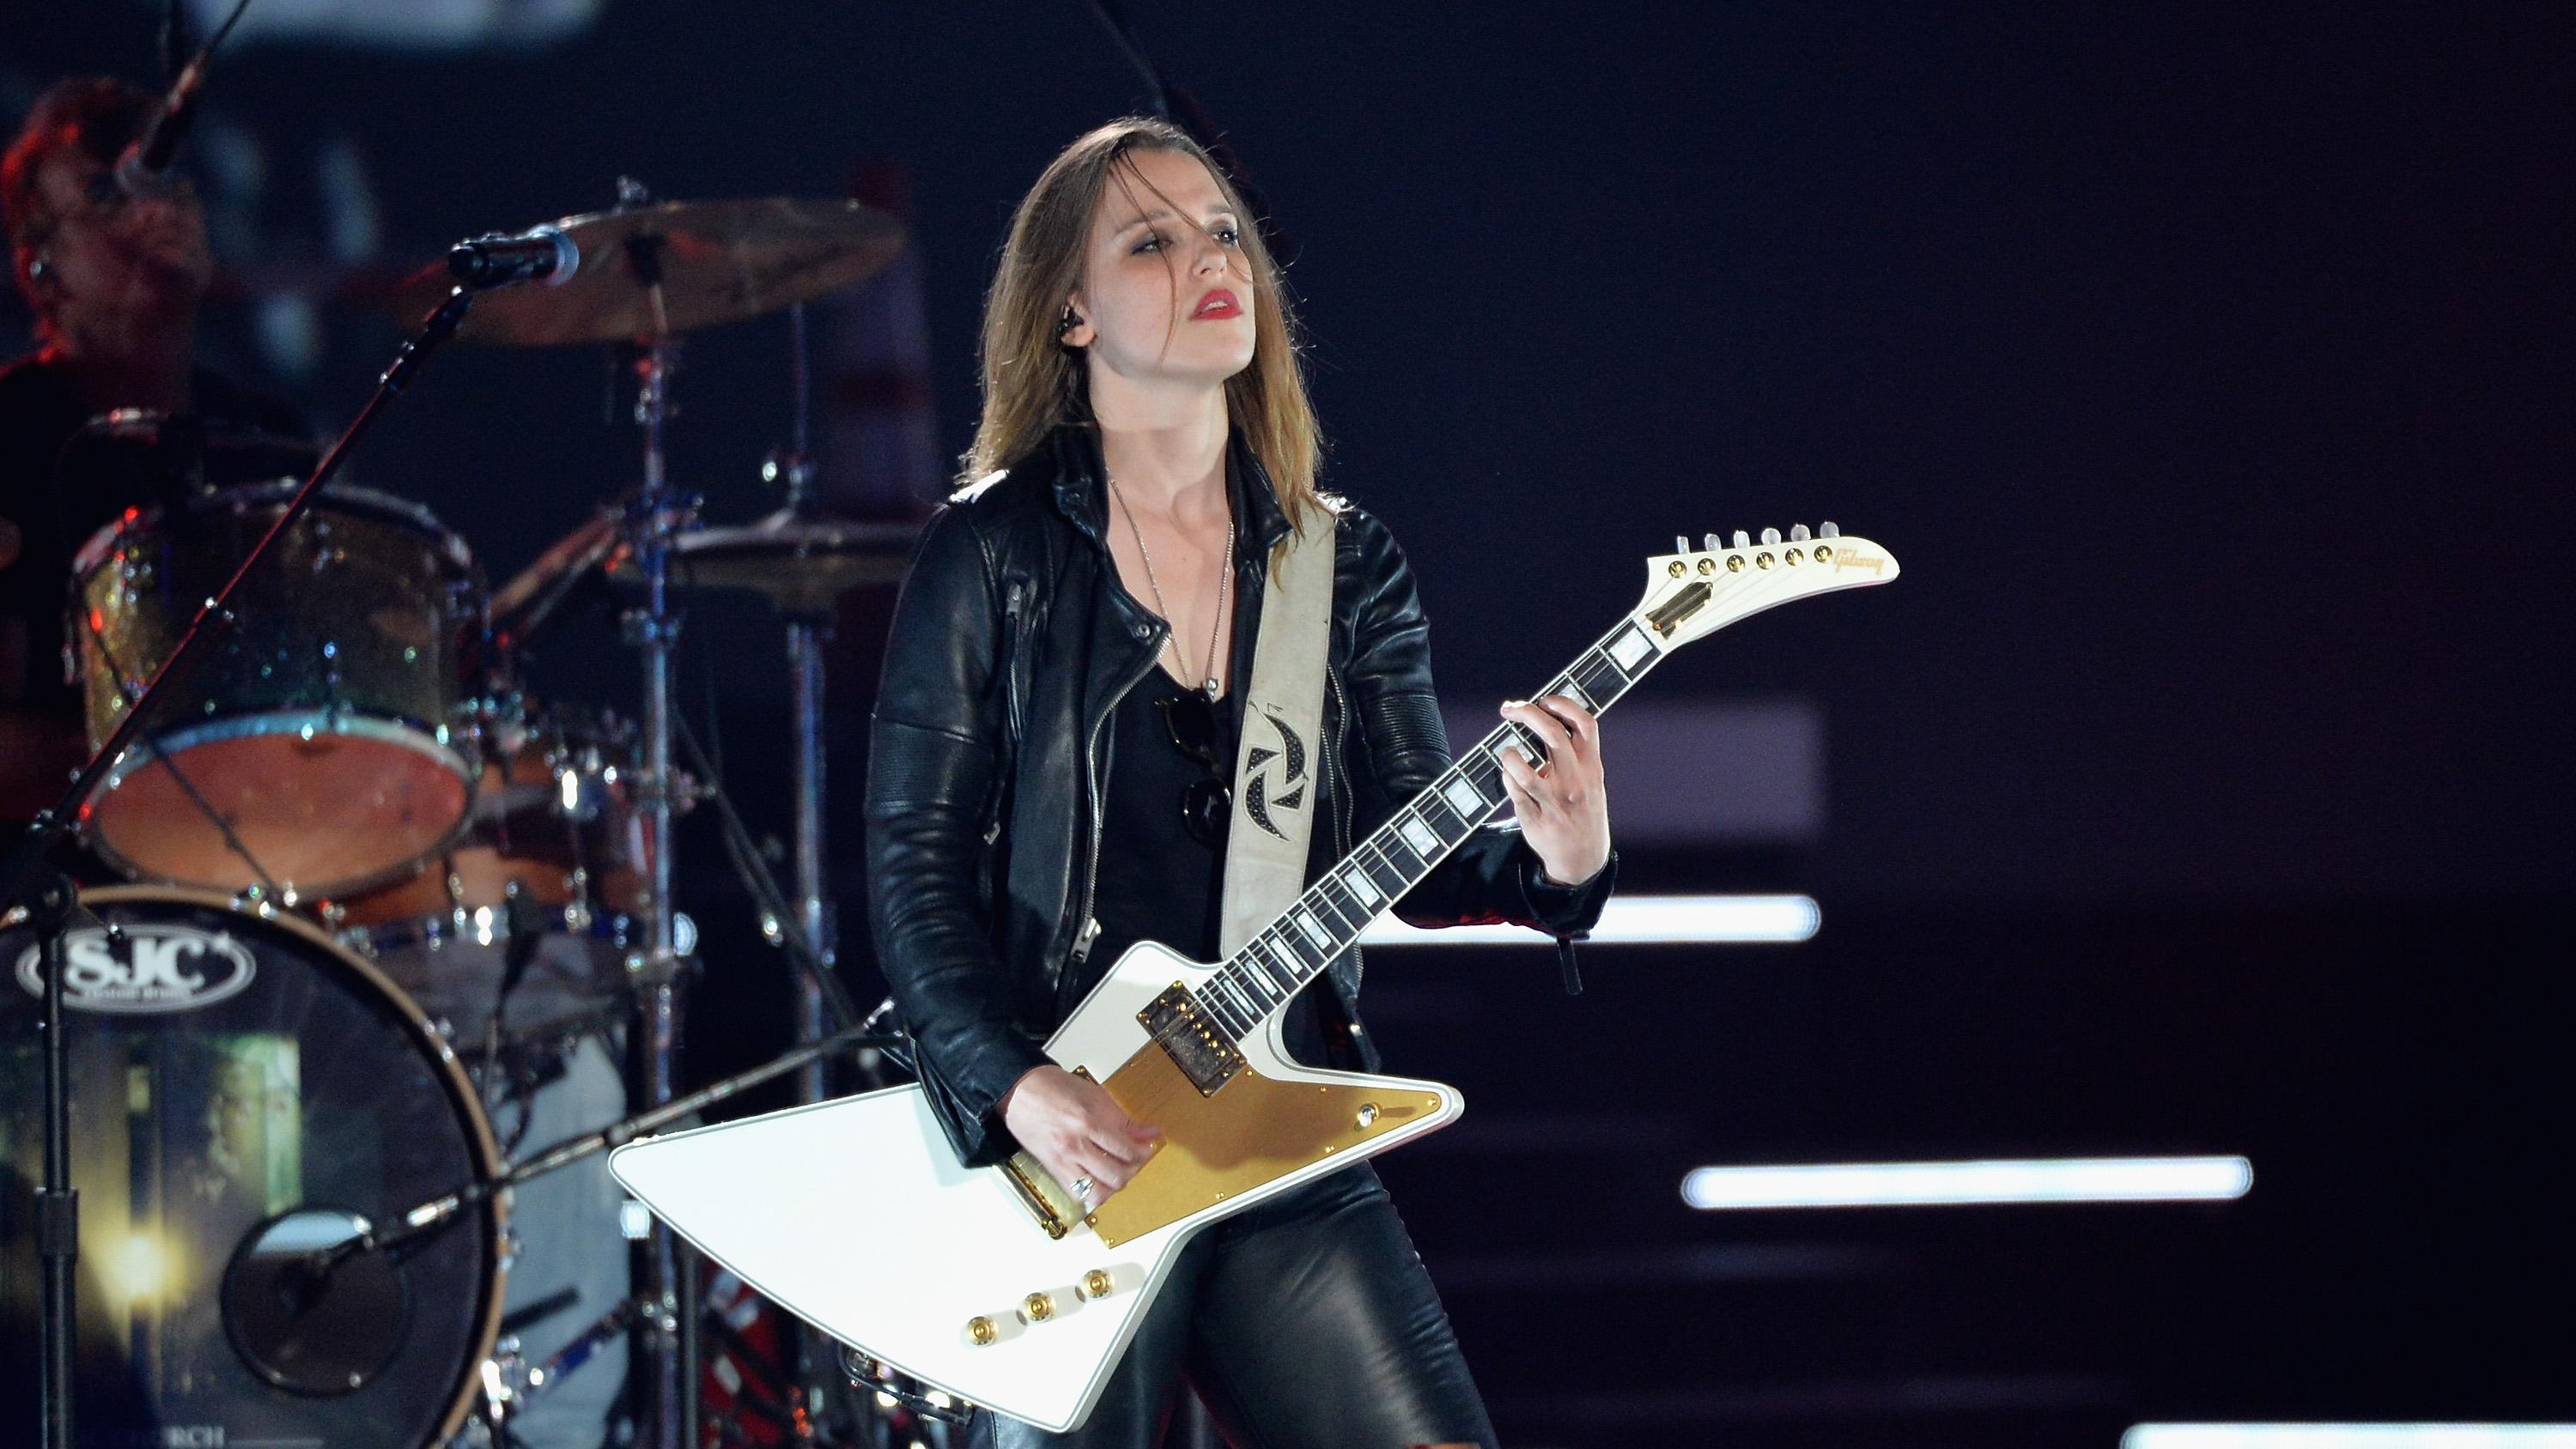 Who is Lzzy Hale? 6 Things to know about her